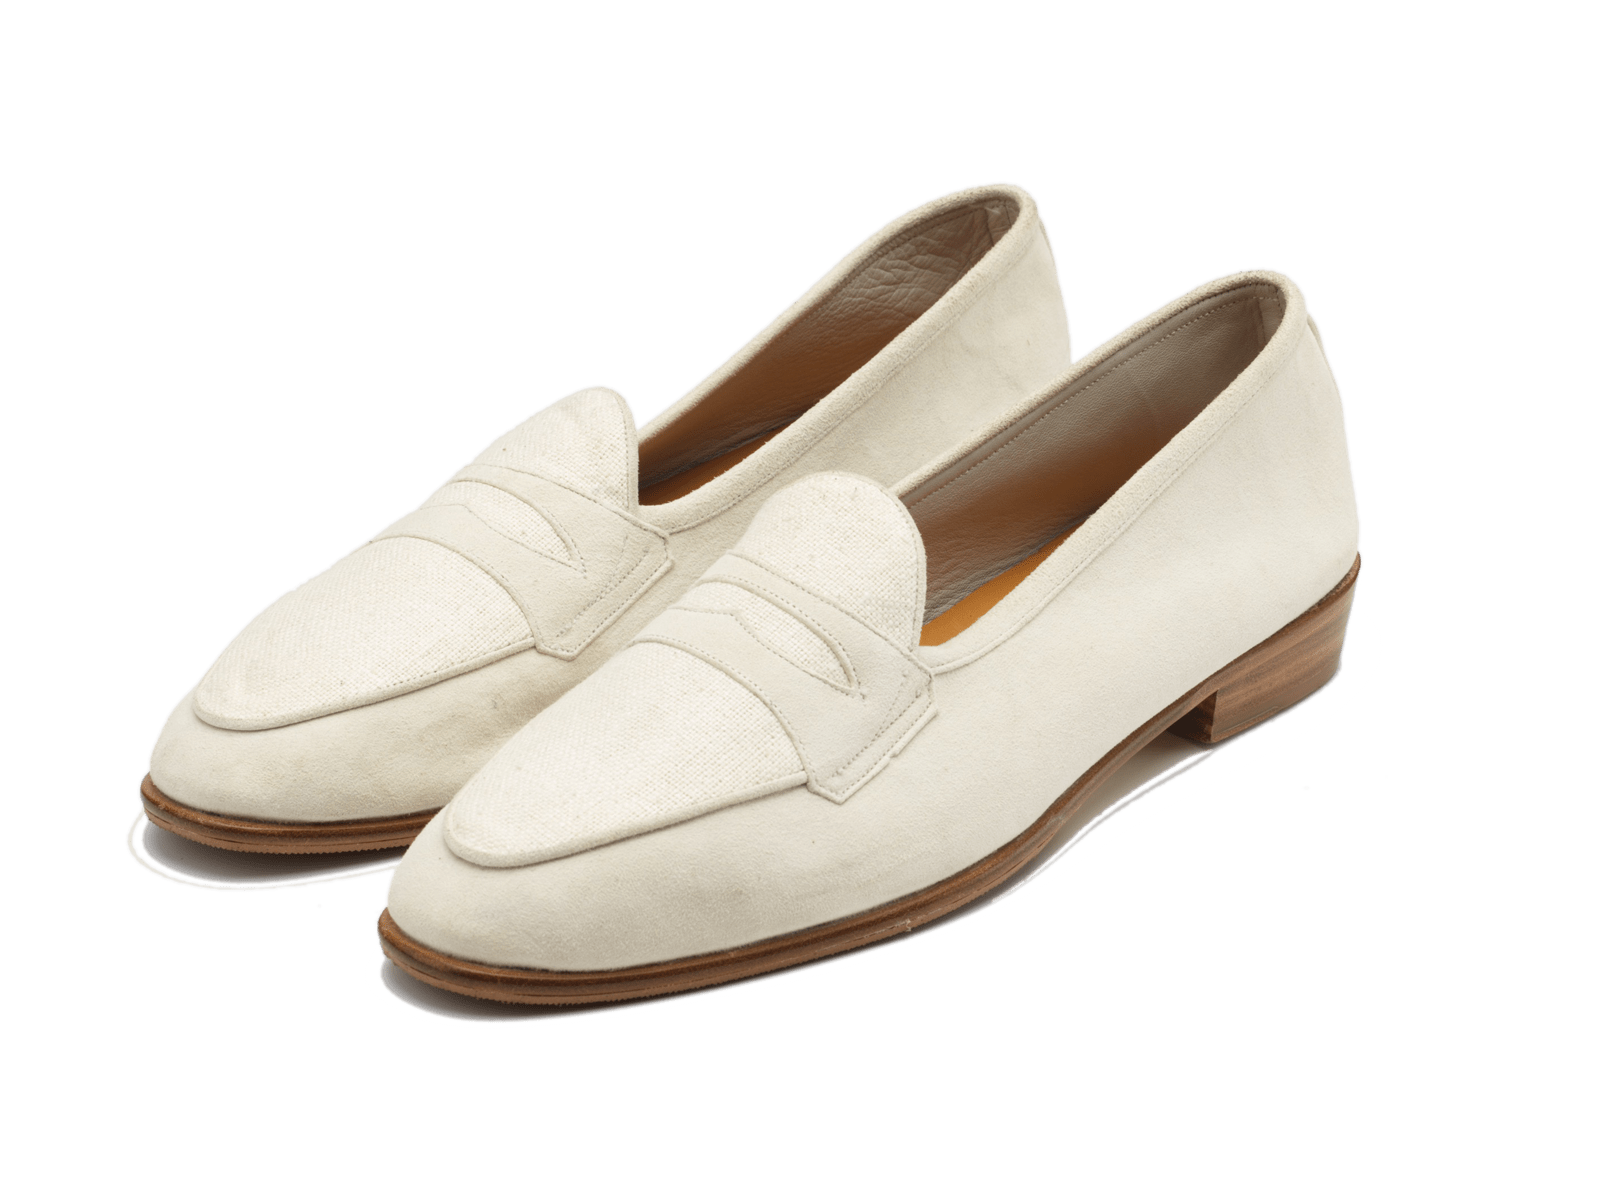 Sagan Classic Riviera in Off White Suede and Silk Matka